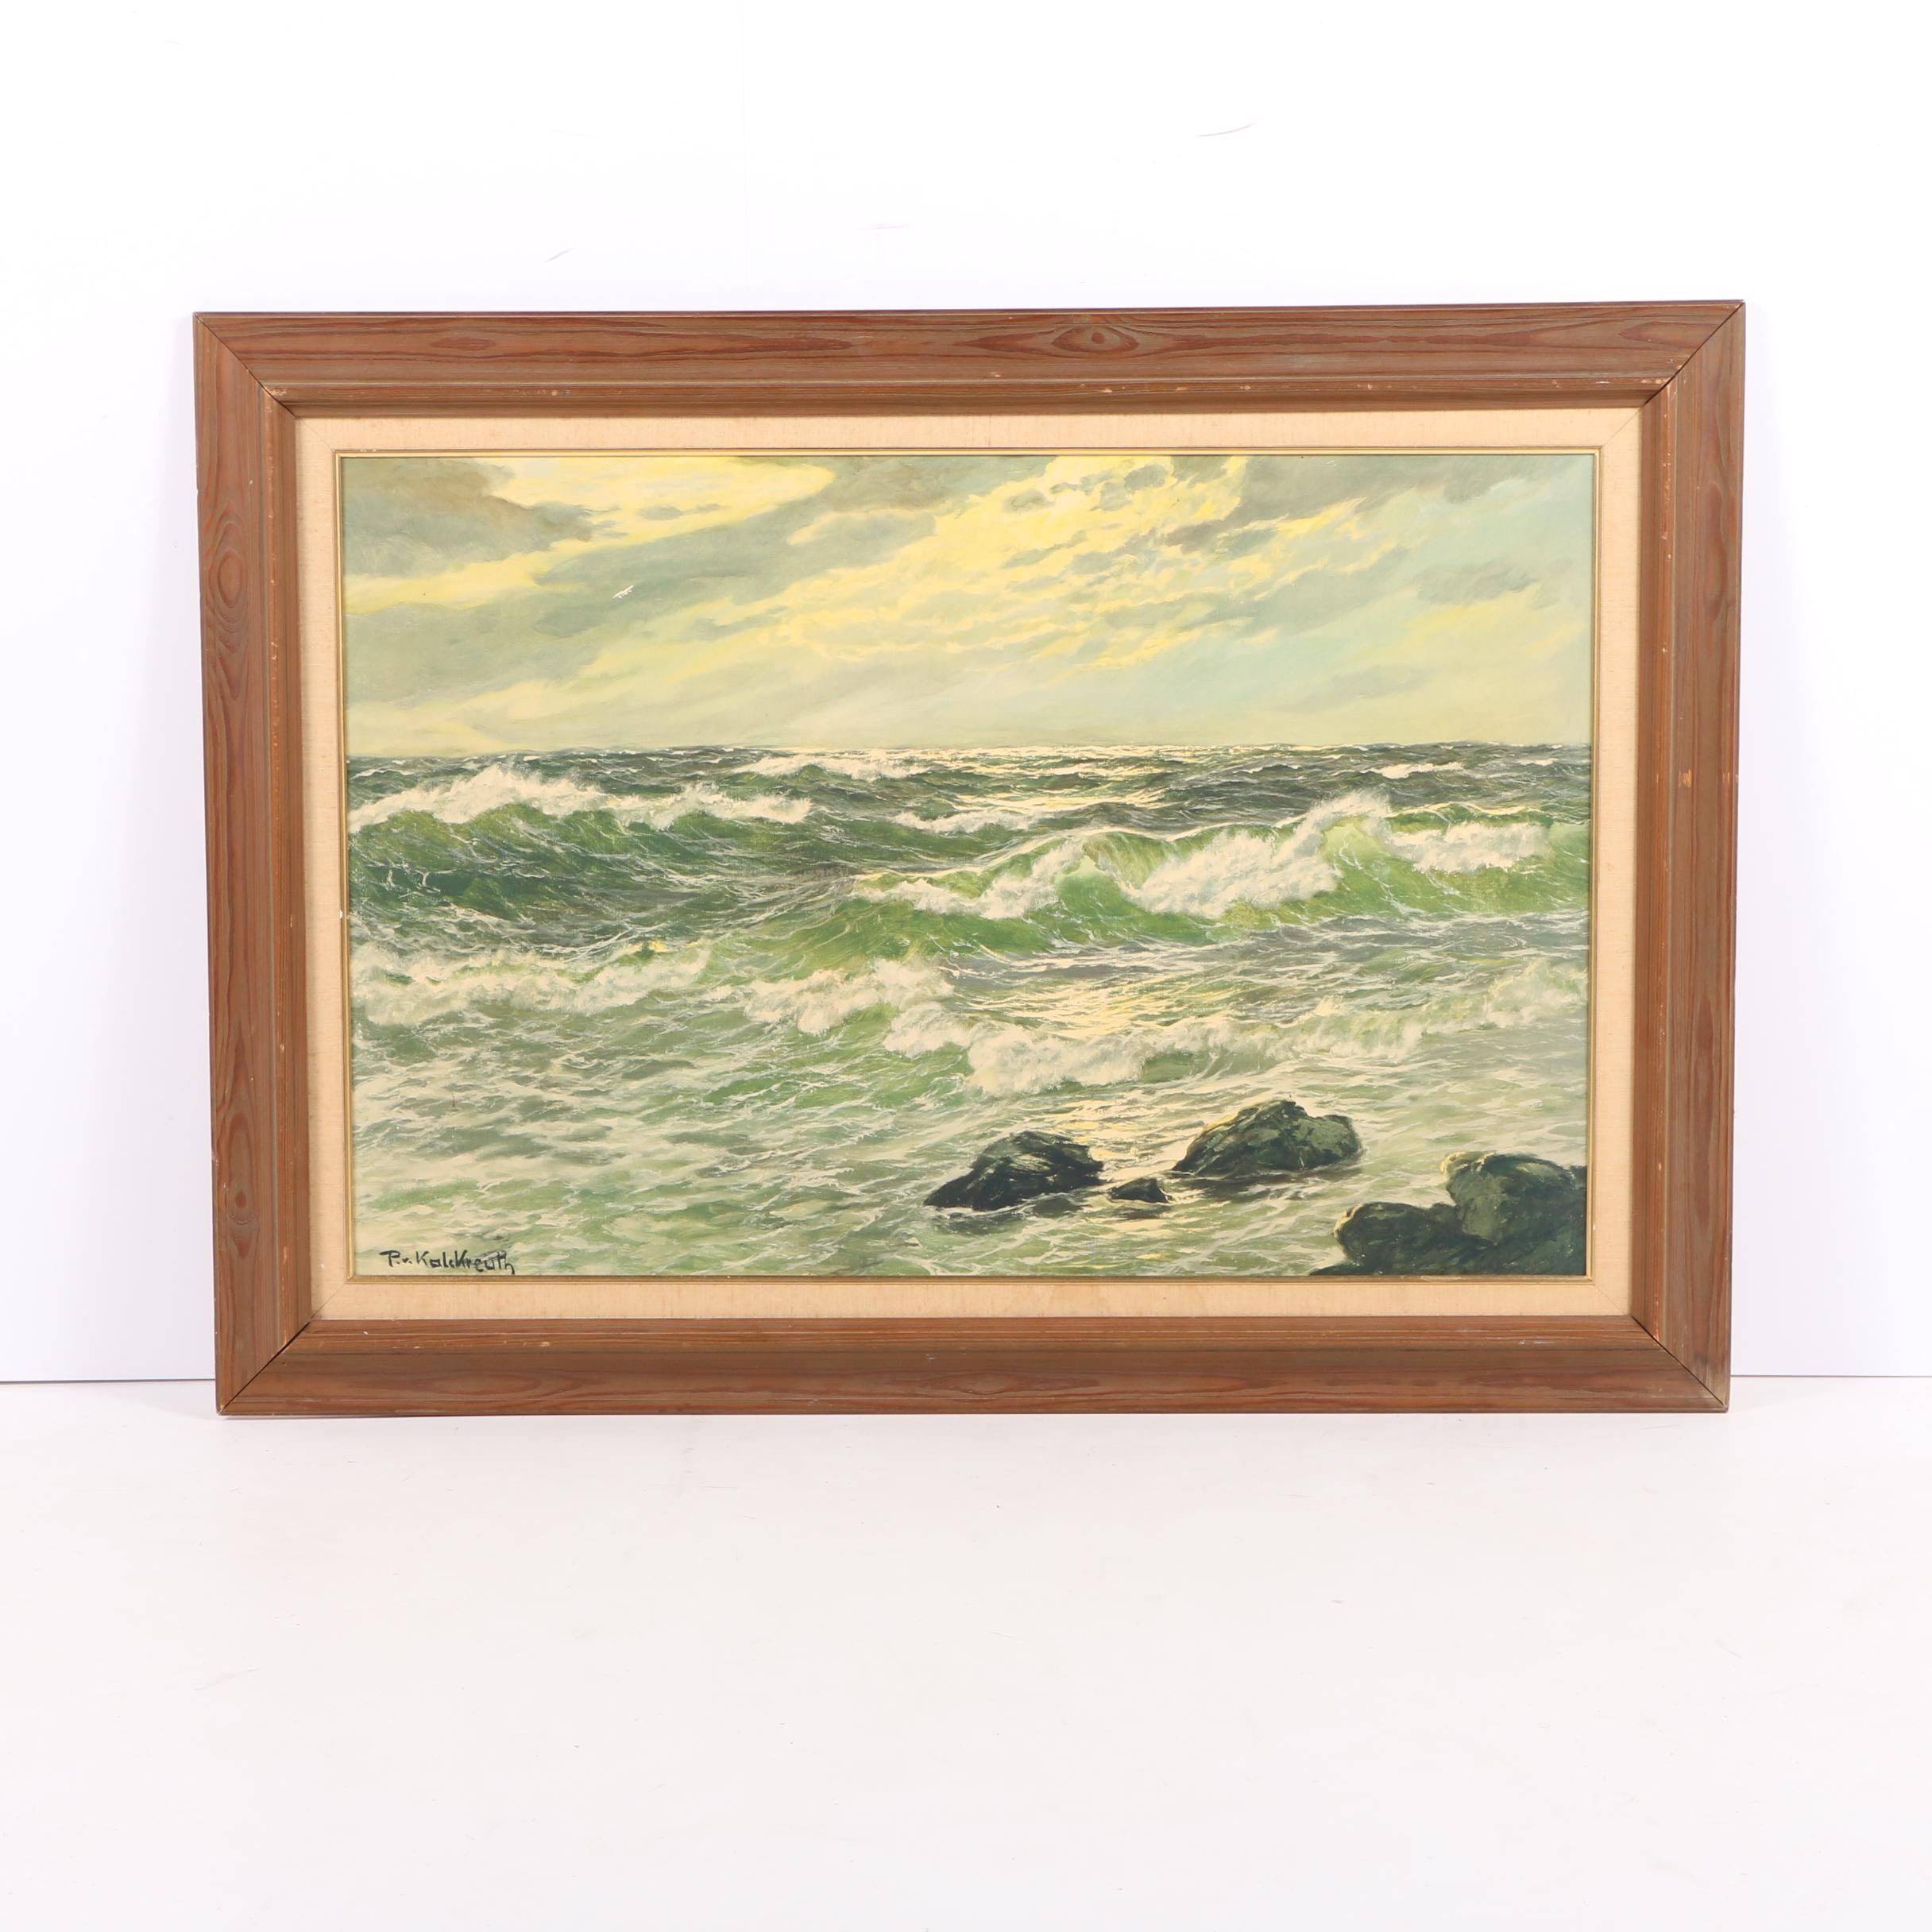 Giclee Print On Paper After Patrick Von Kalkreuth Maritime Painting